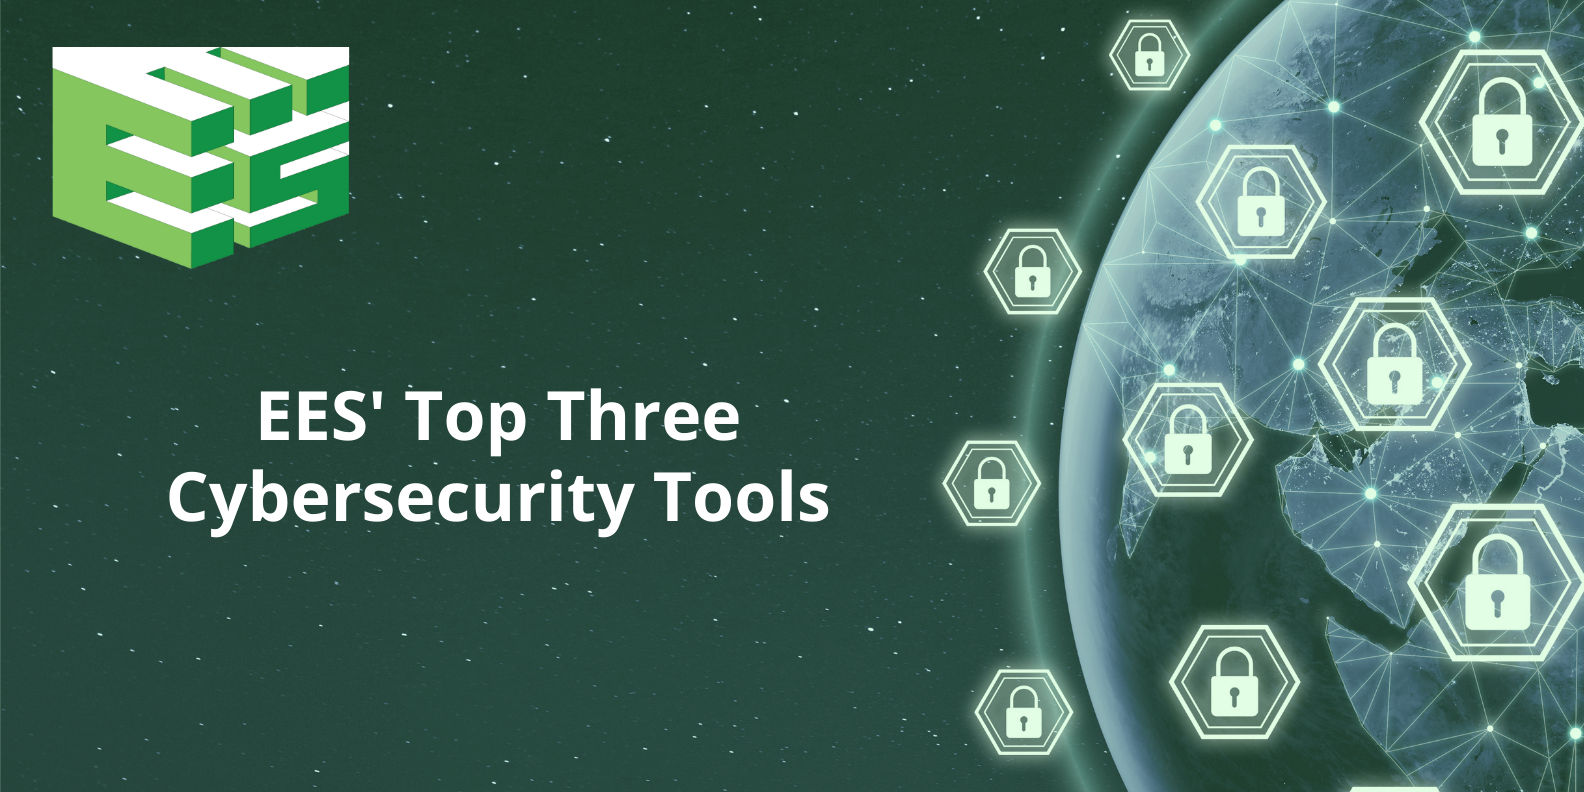 EES cybersecurity tools for industry